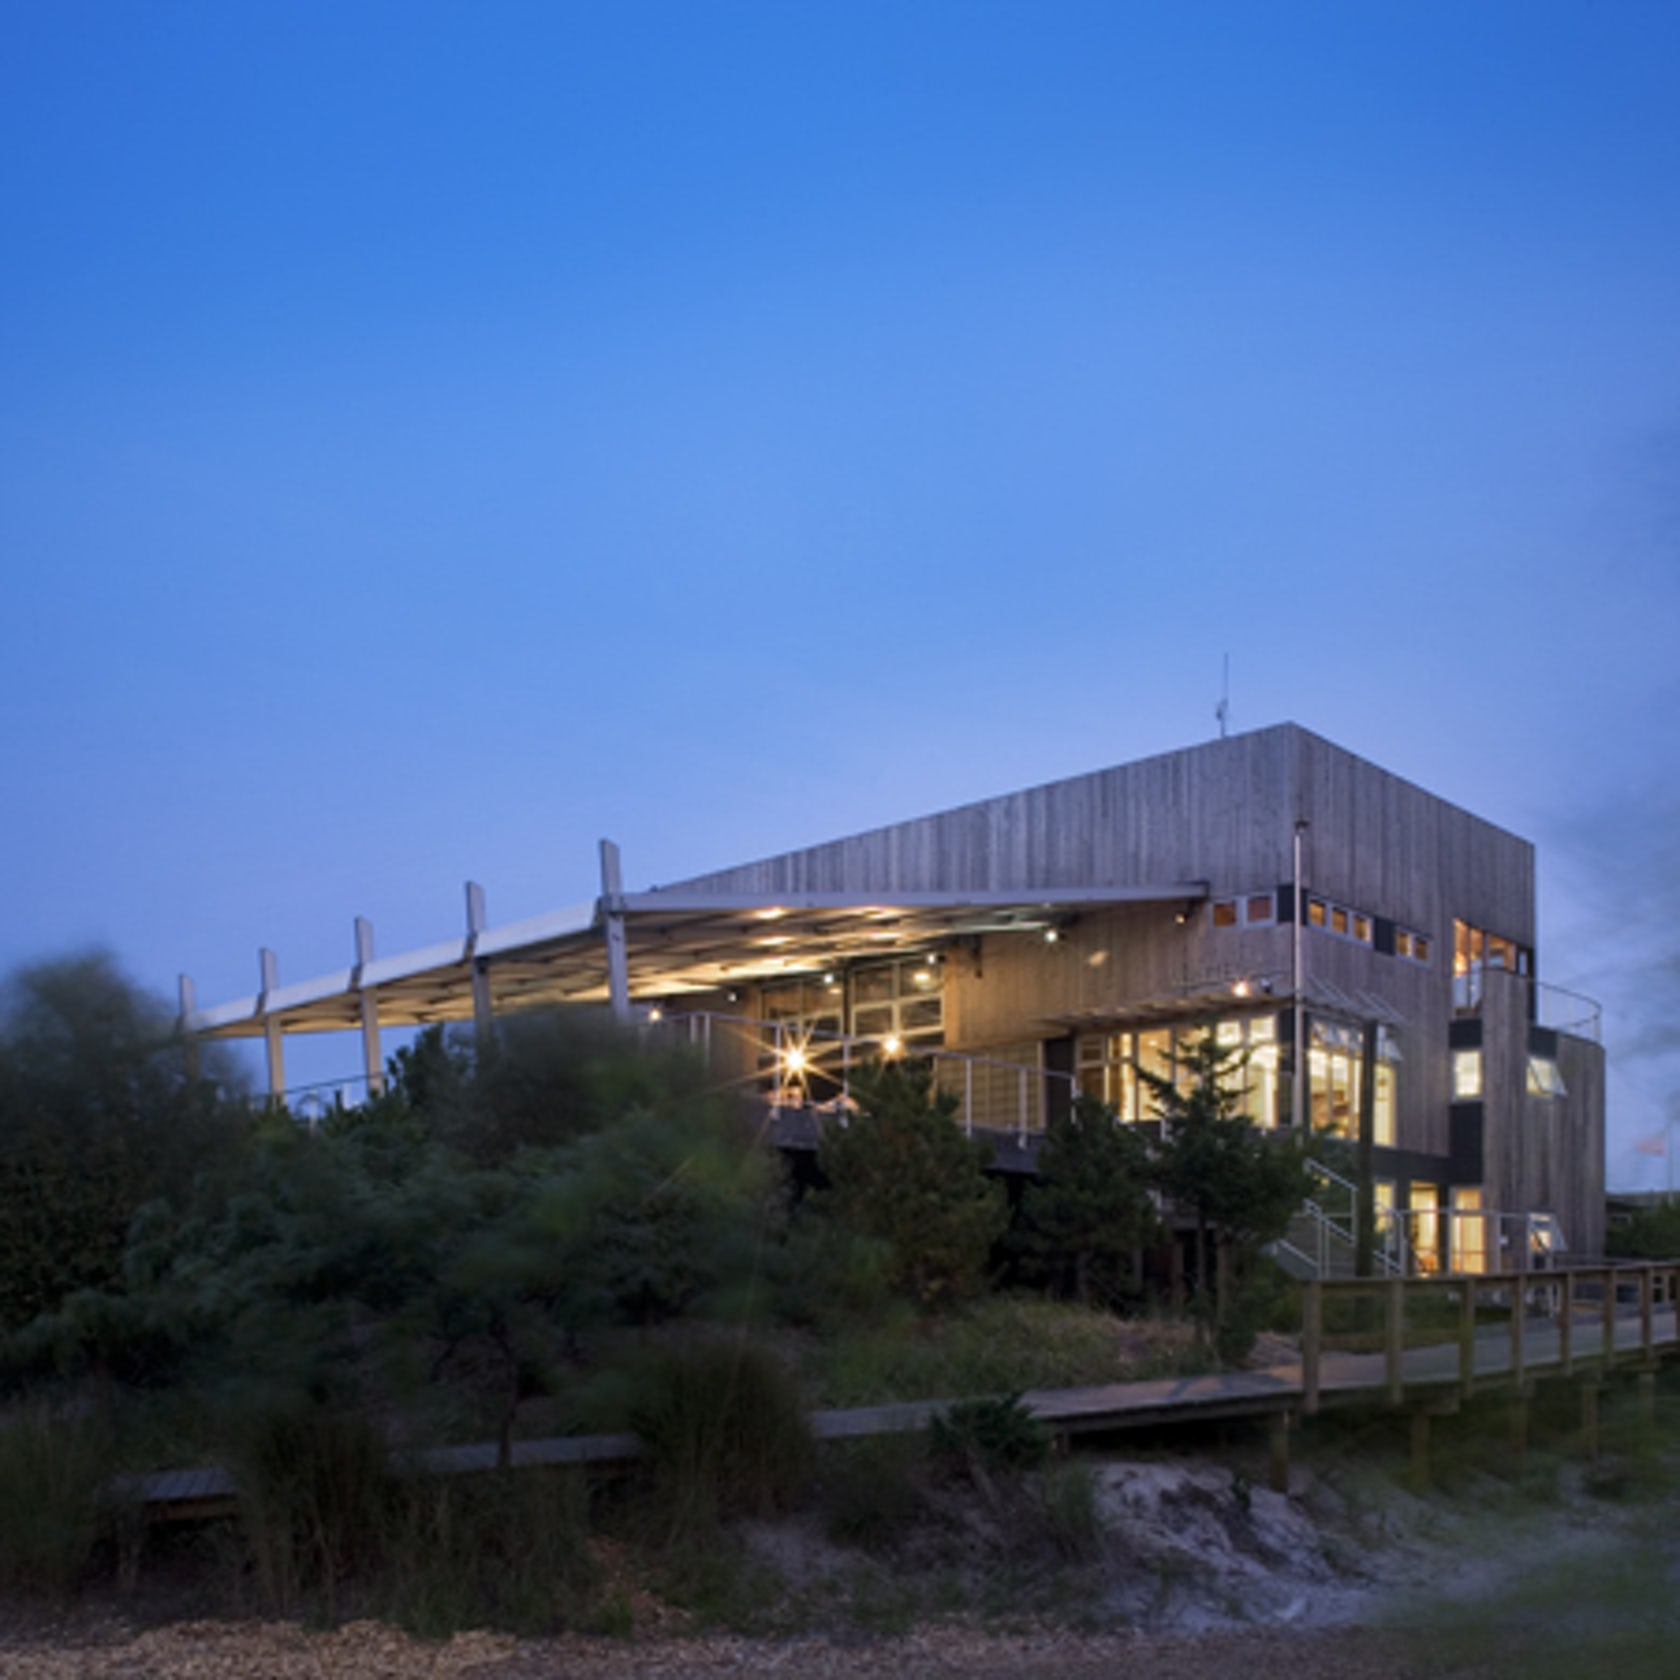 Fire Island Ny: Fire Island Pines Community Center